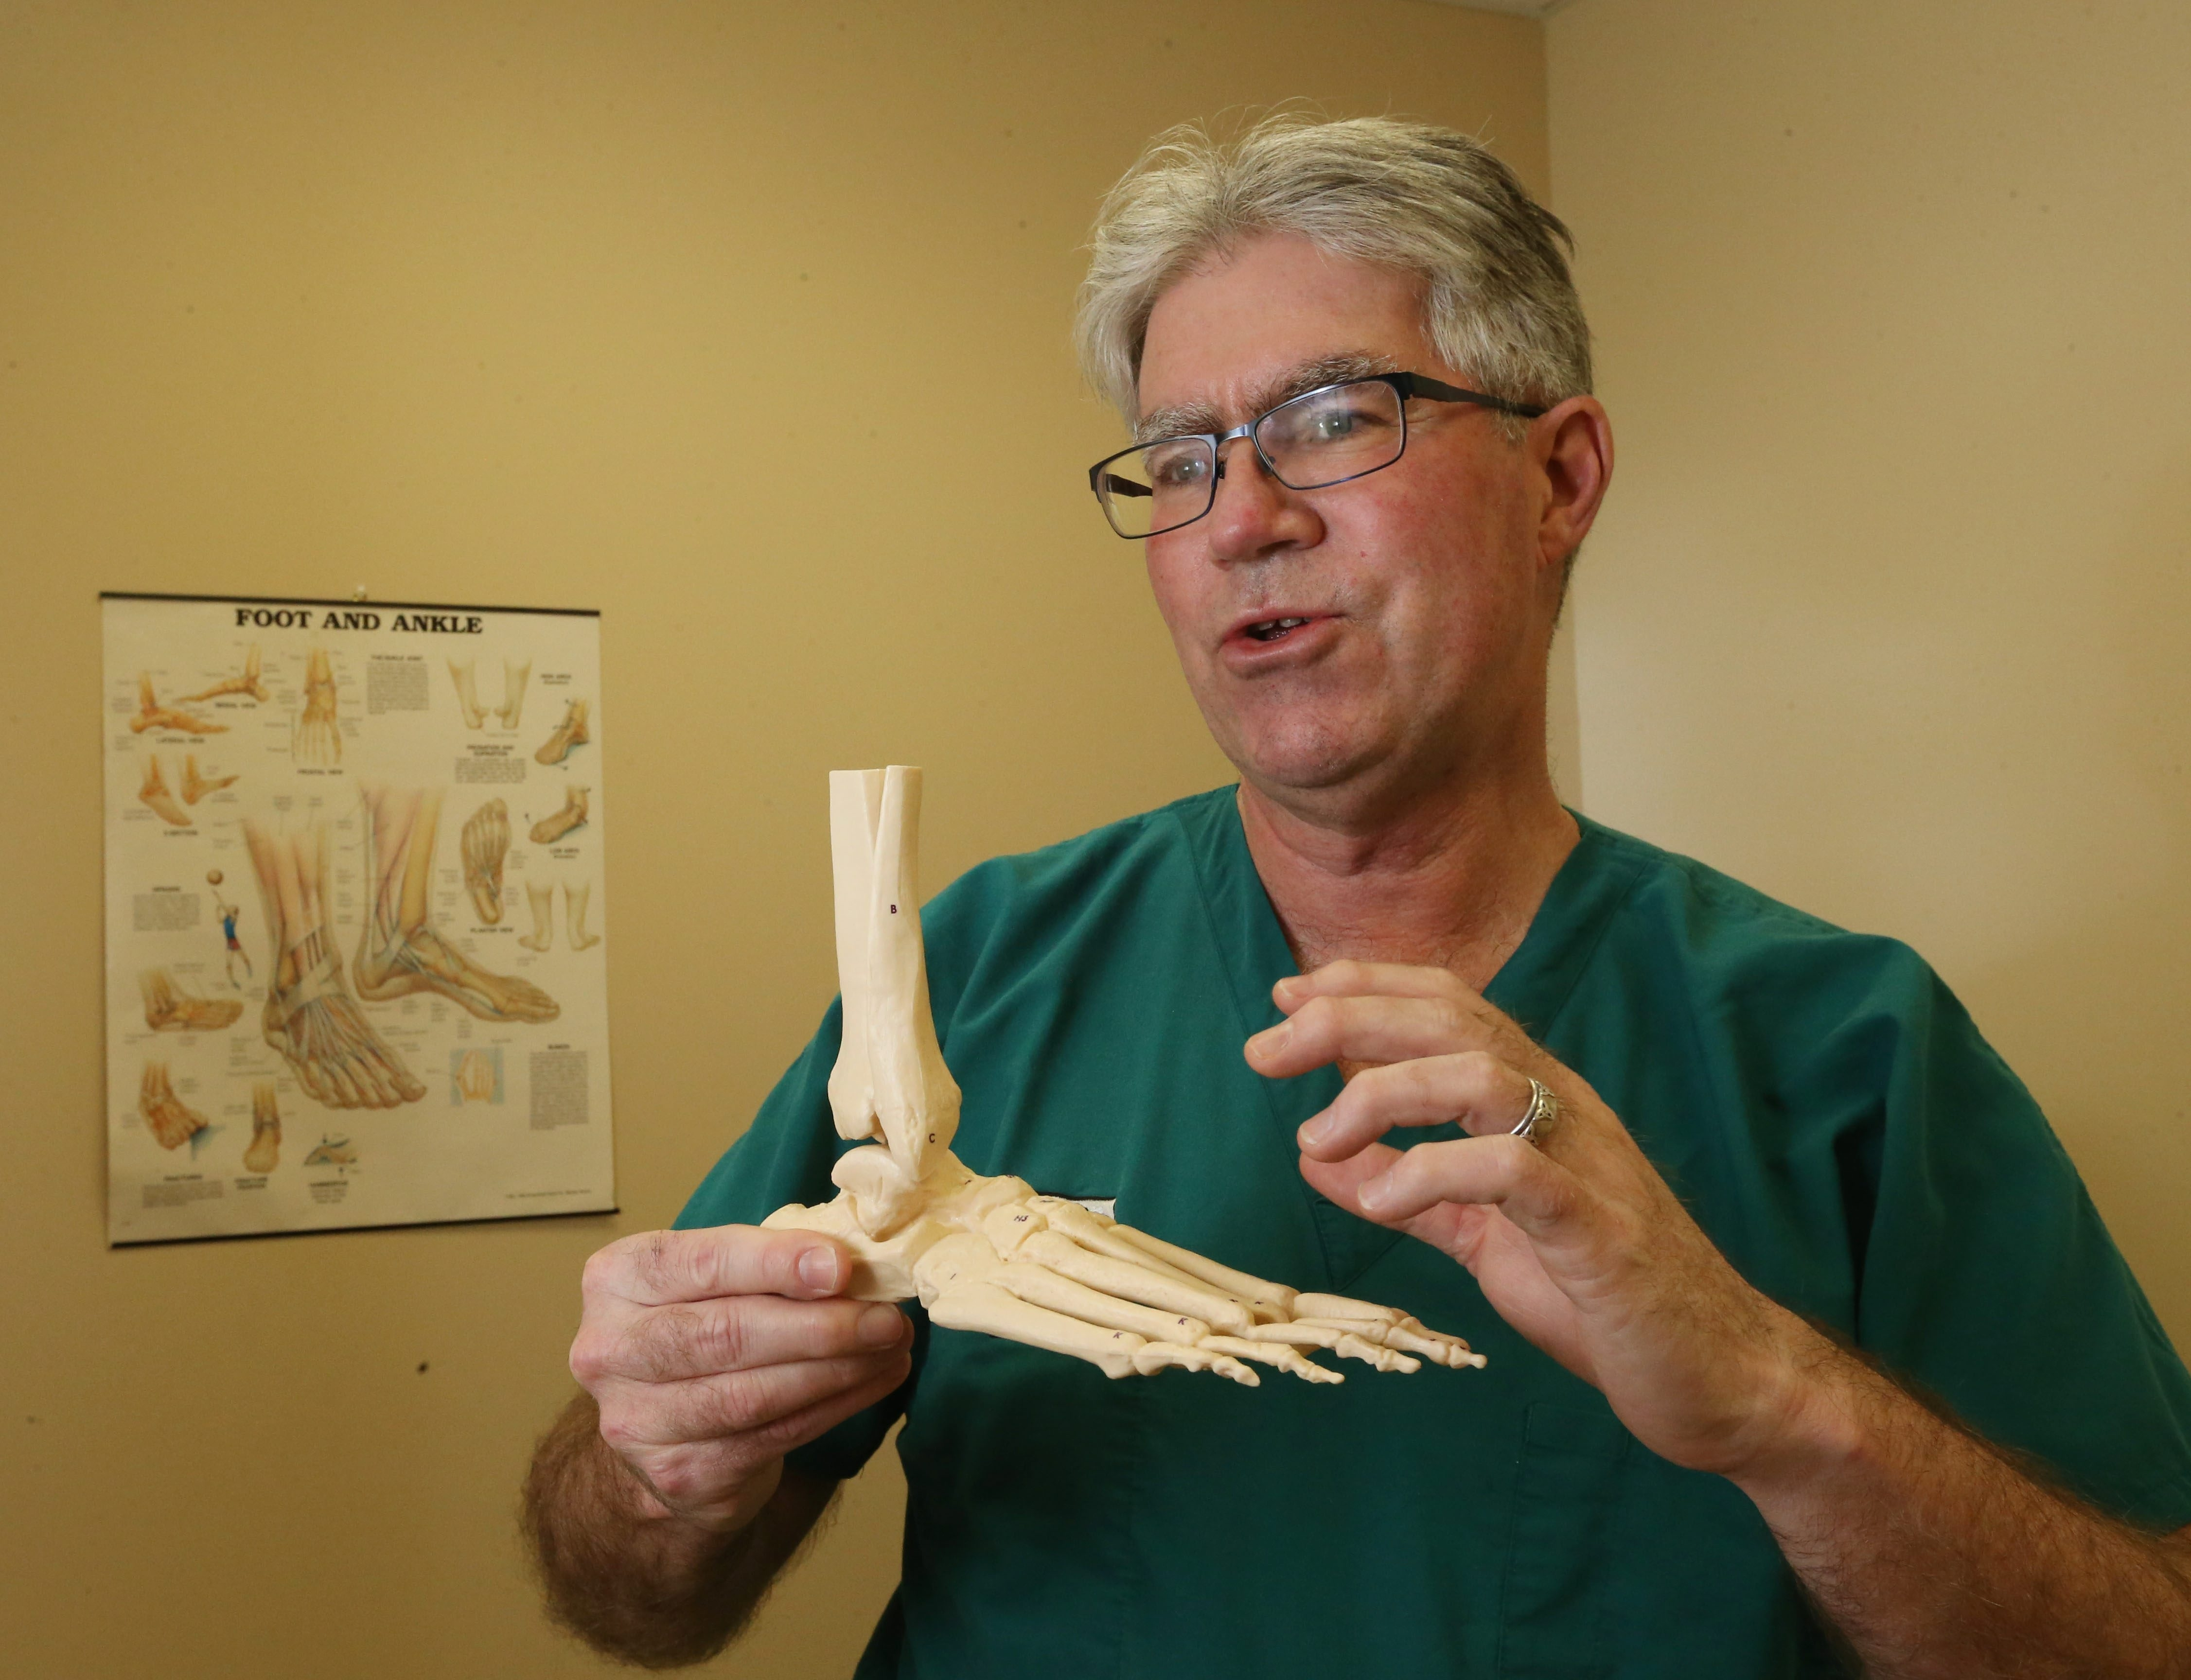 """There are 26 bones and numerous joints in the foot. They have to function in harmony in order for the foot to operate efficiently. "" – Dr. John Hurley, Doctor of Podiatric Medicine, of Excelsior Orthopaedics, speaking about common injuries of the foot and the importance of treating them."